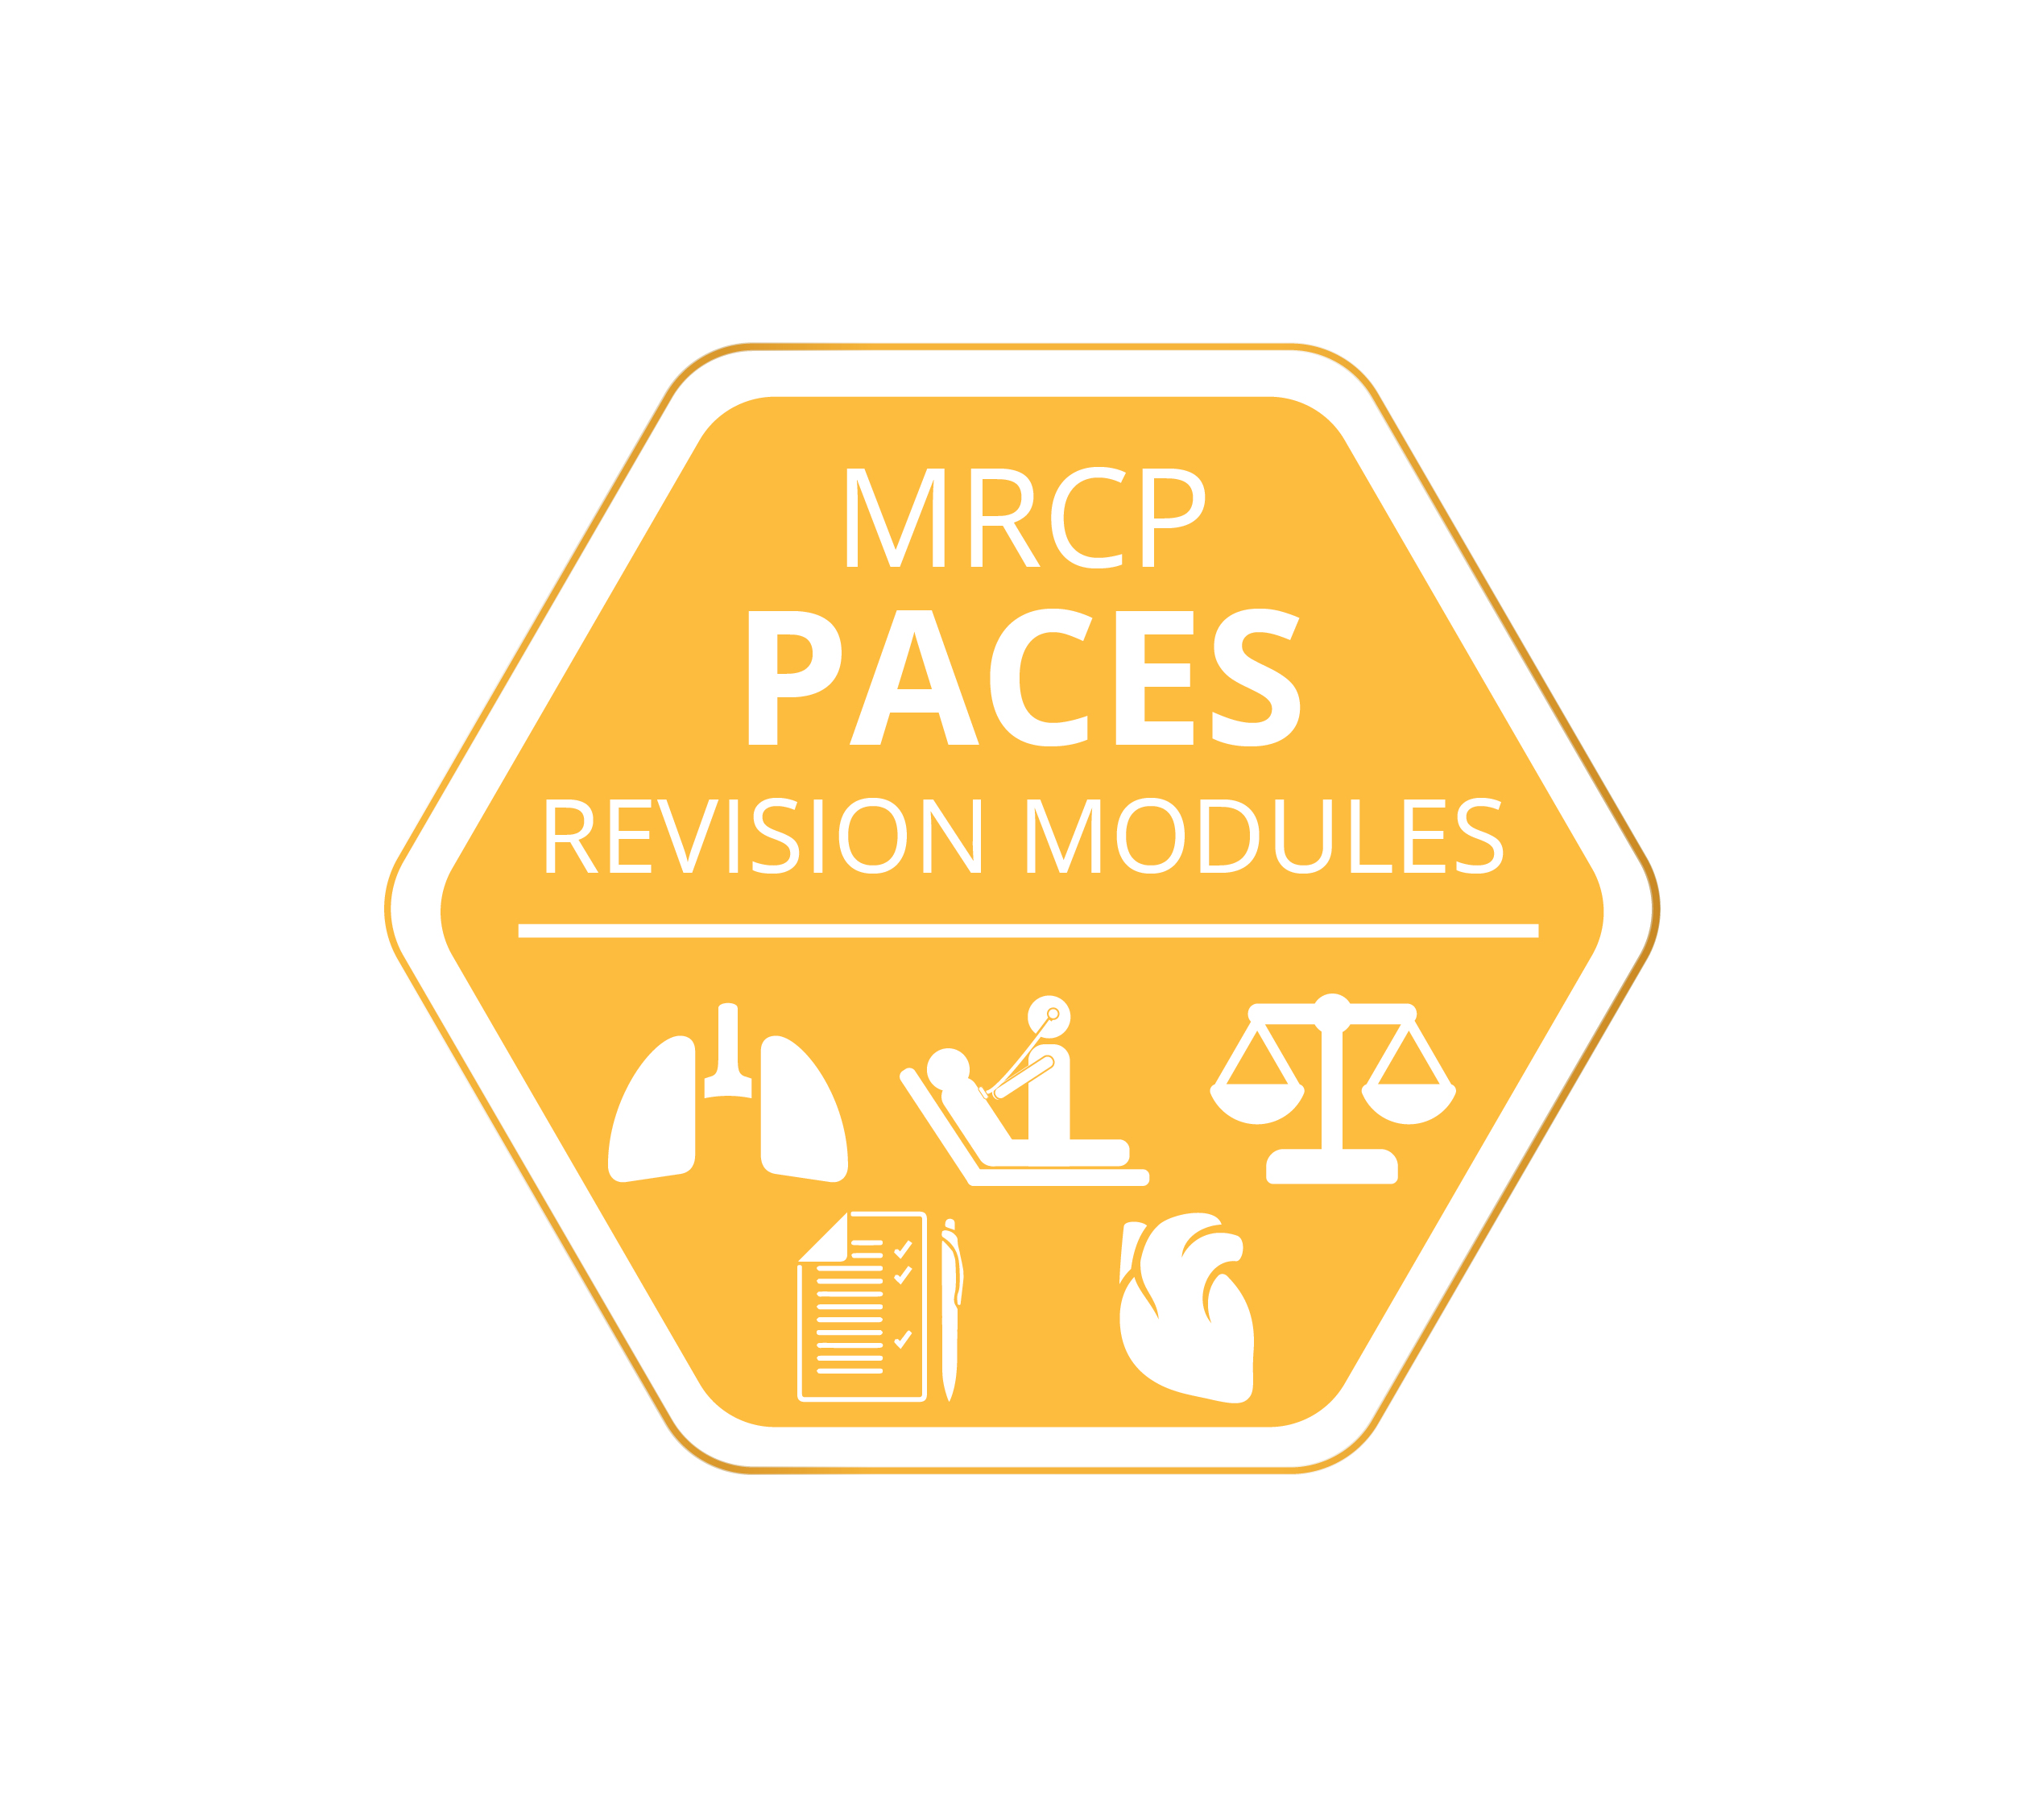 MRCP(UK) PACES Revision Modules